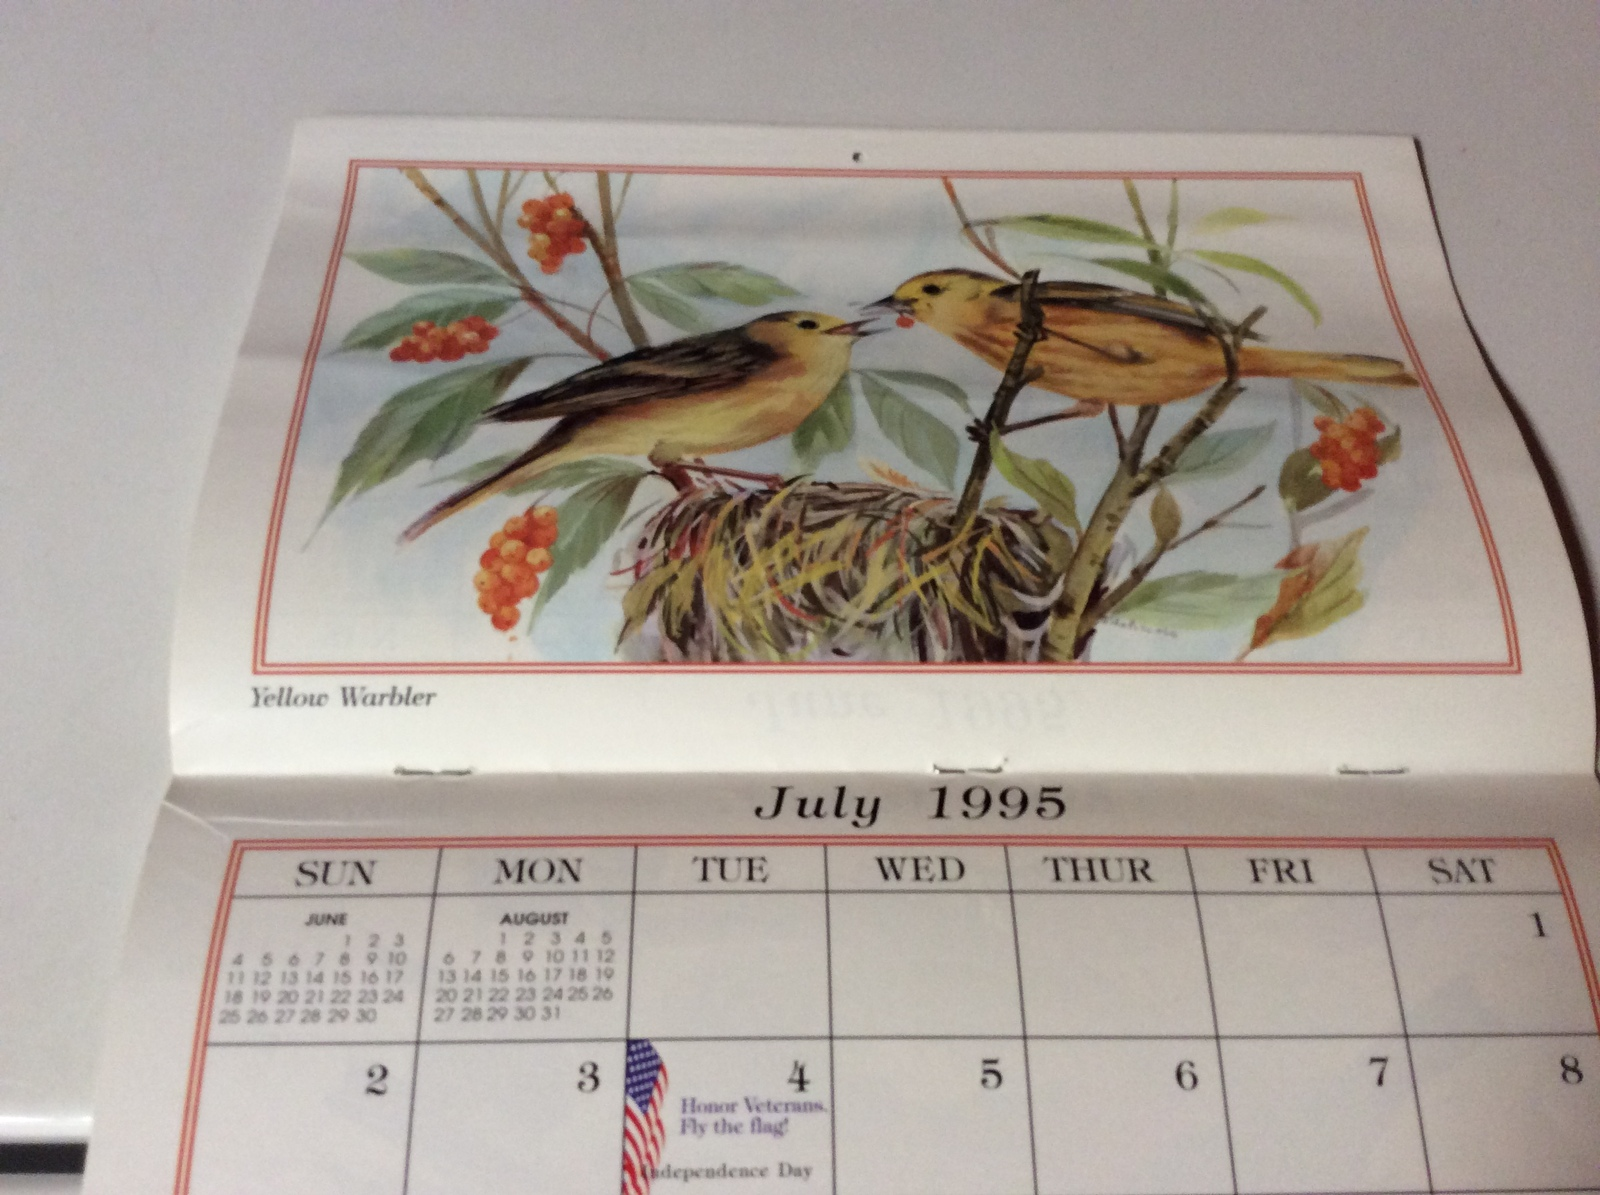 1995 Birds of America Collection Calendar -Paralyzed Veterans of America